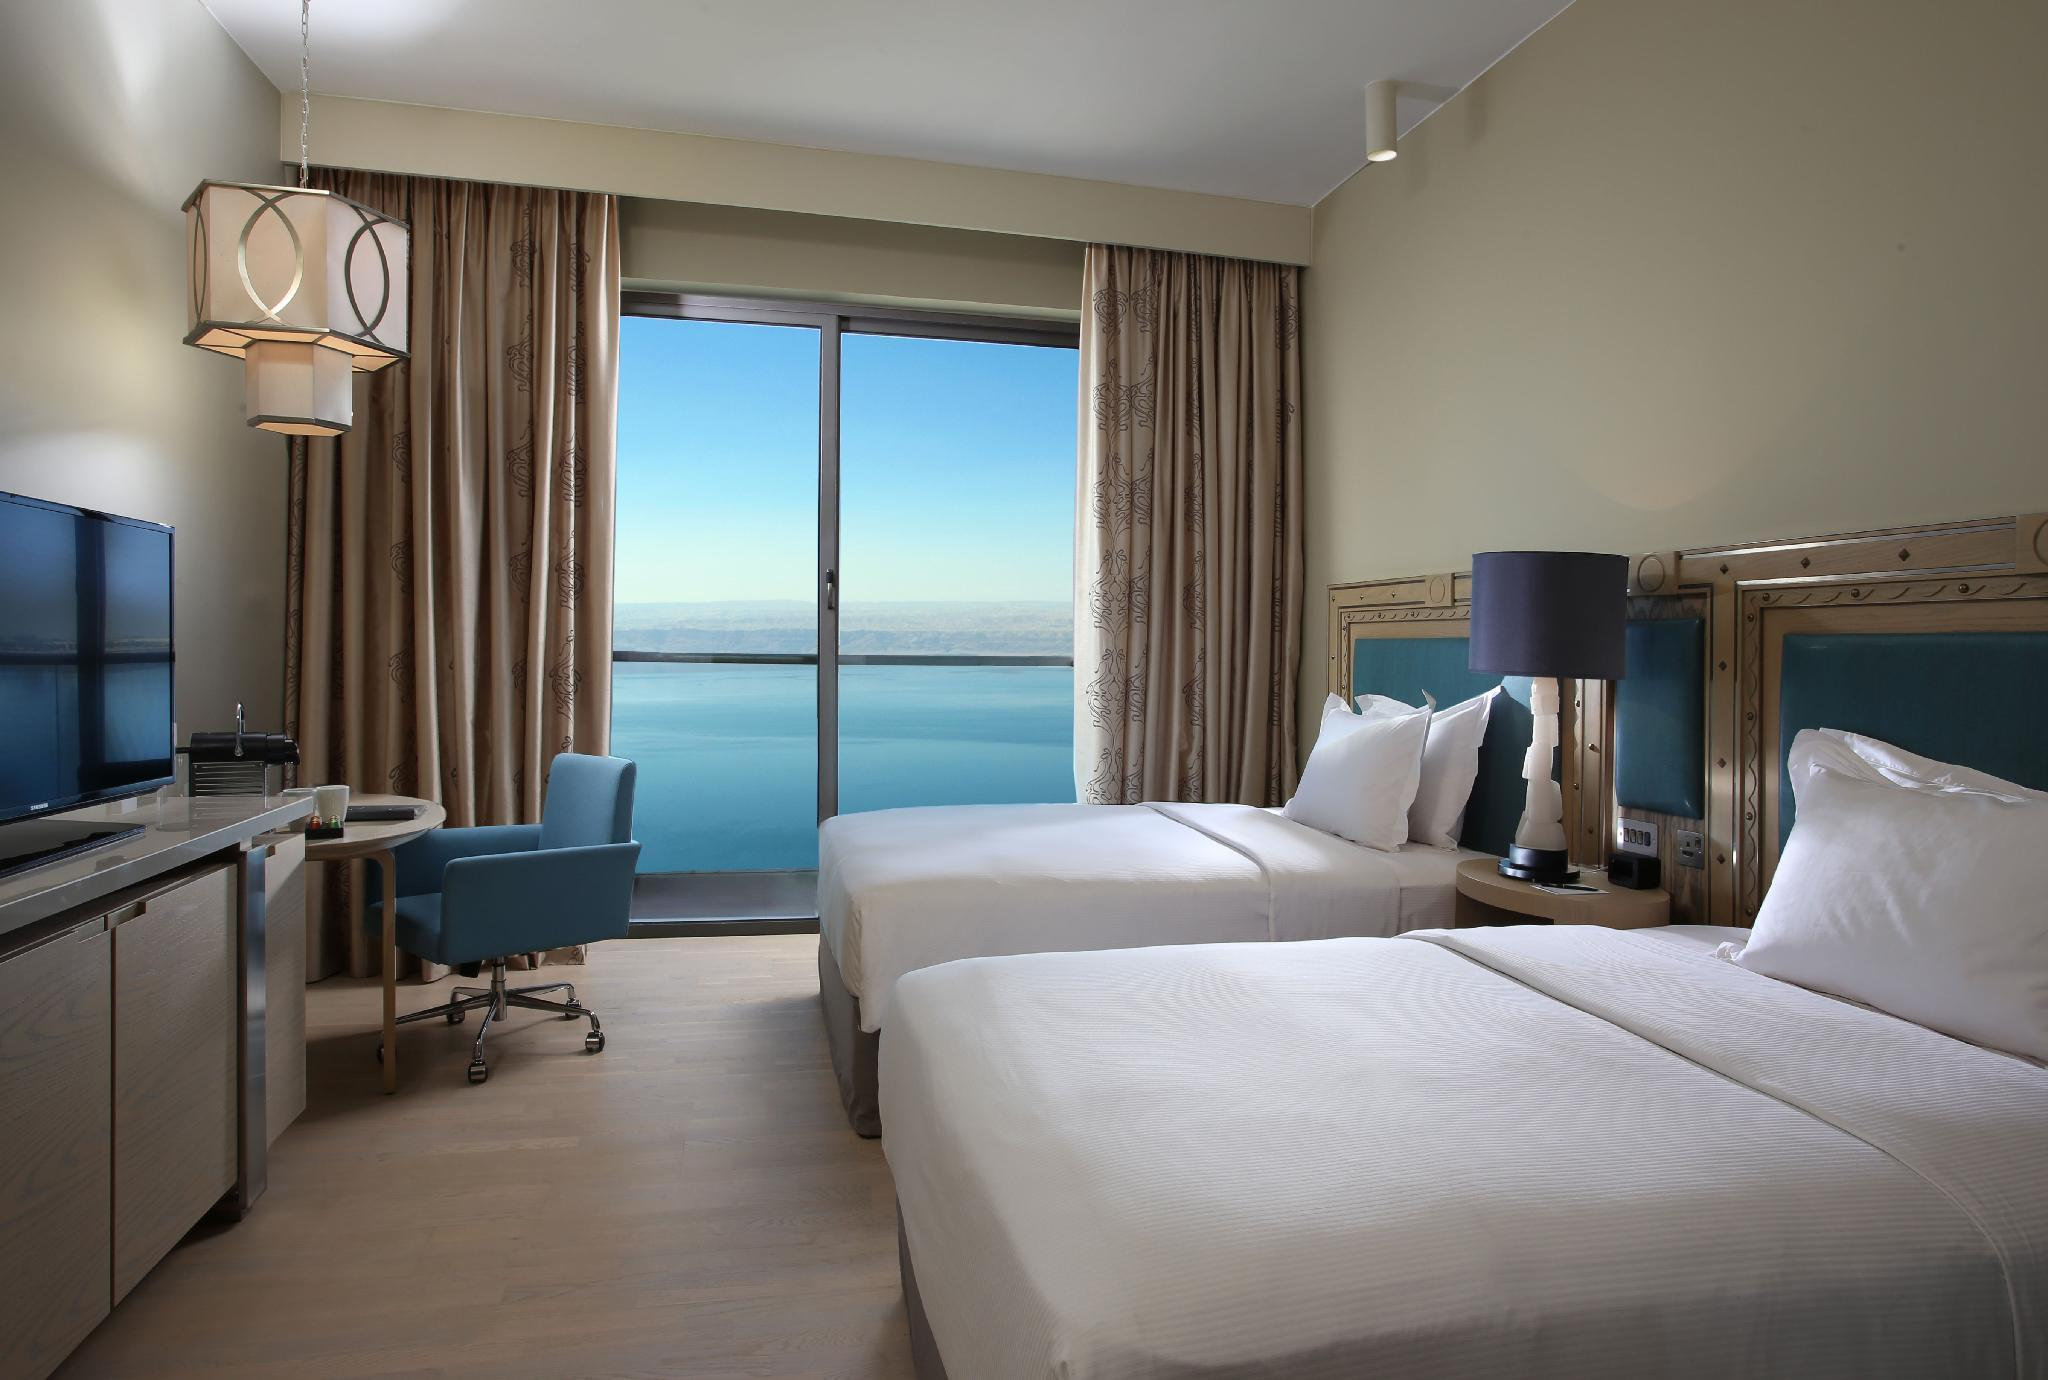 Two Deluxe Bed Executive Room with View